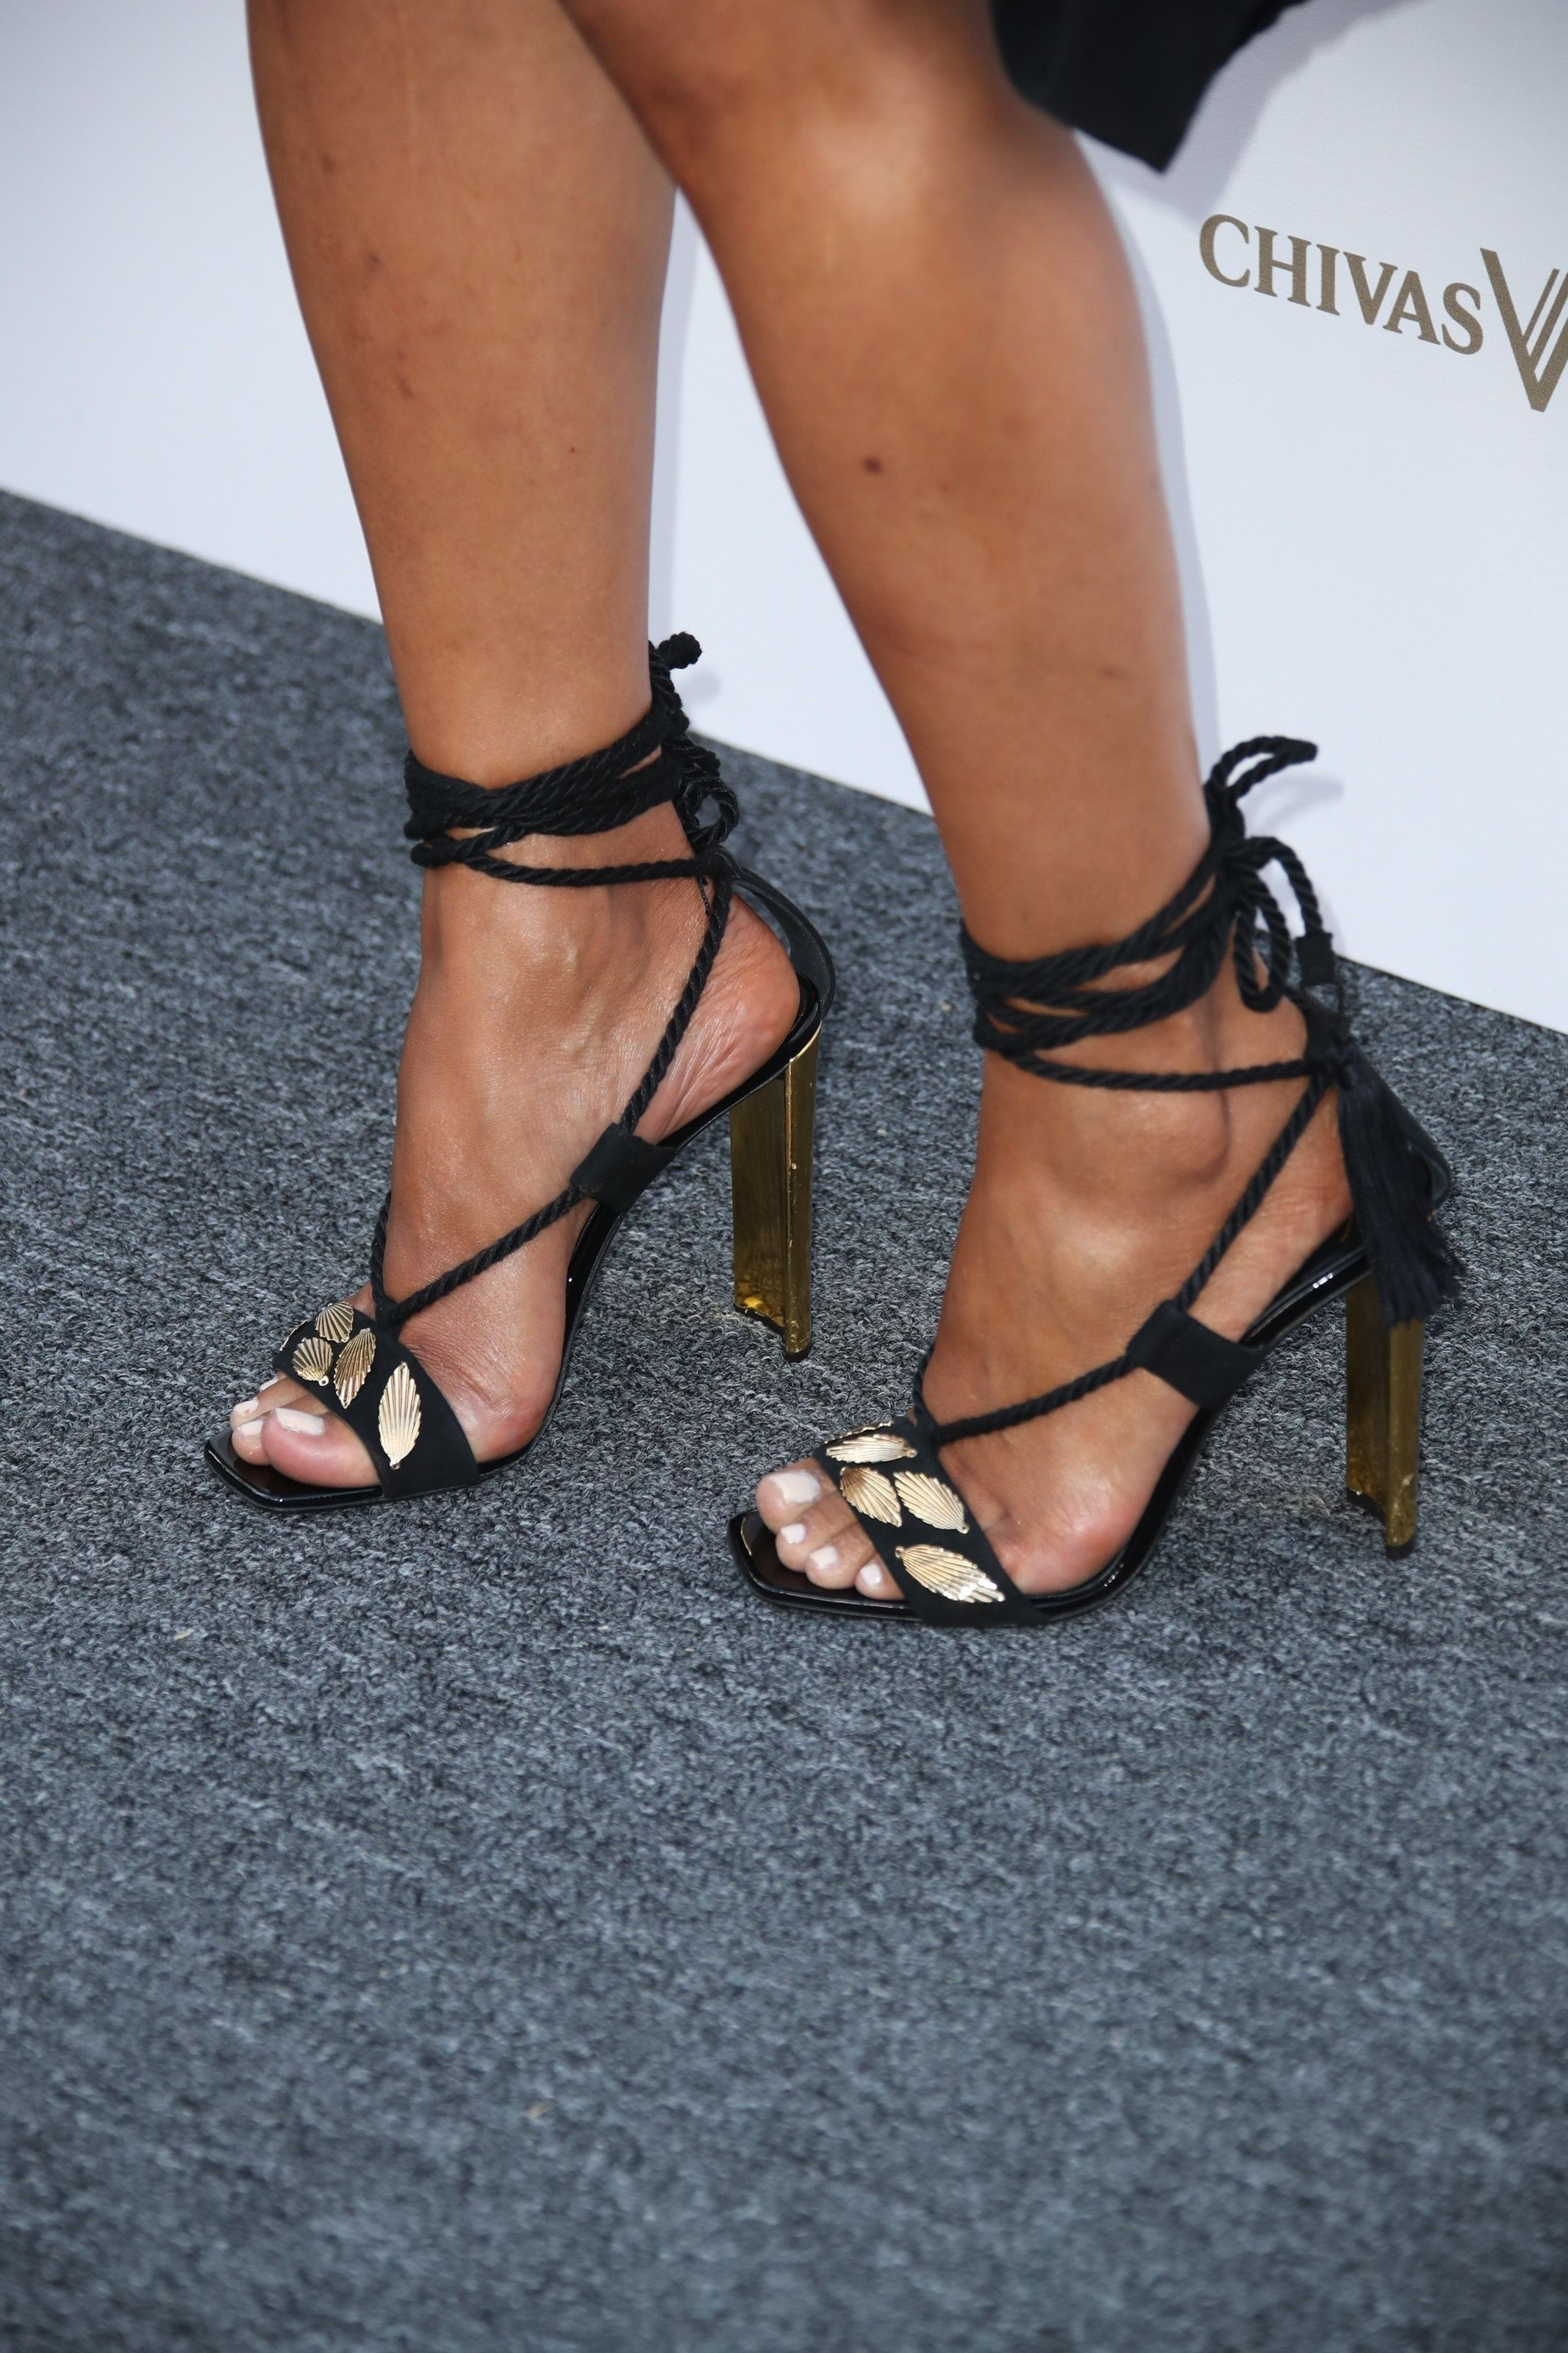 Feet Halle Berry nudes (16 photo), Topless, Fappening, Selfie, braless 2018